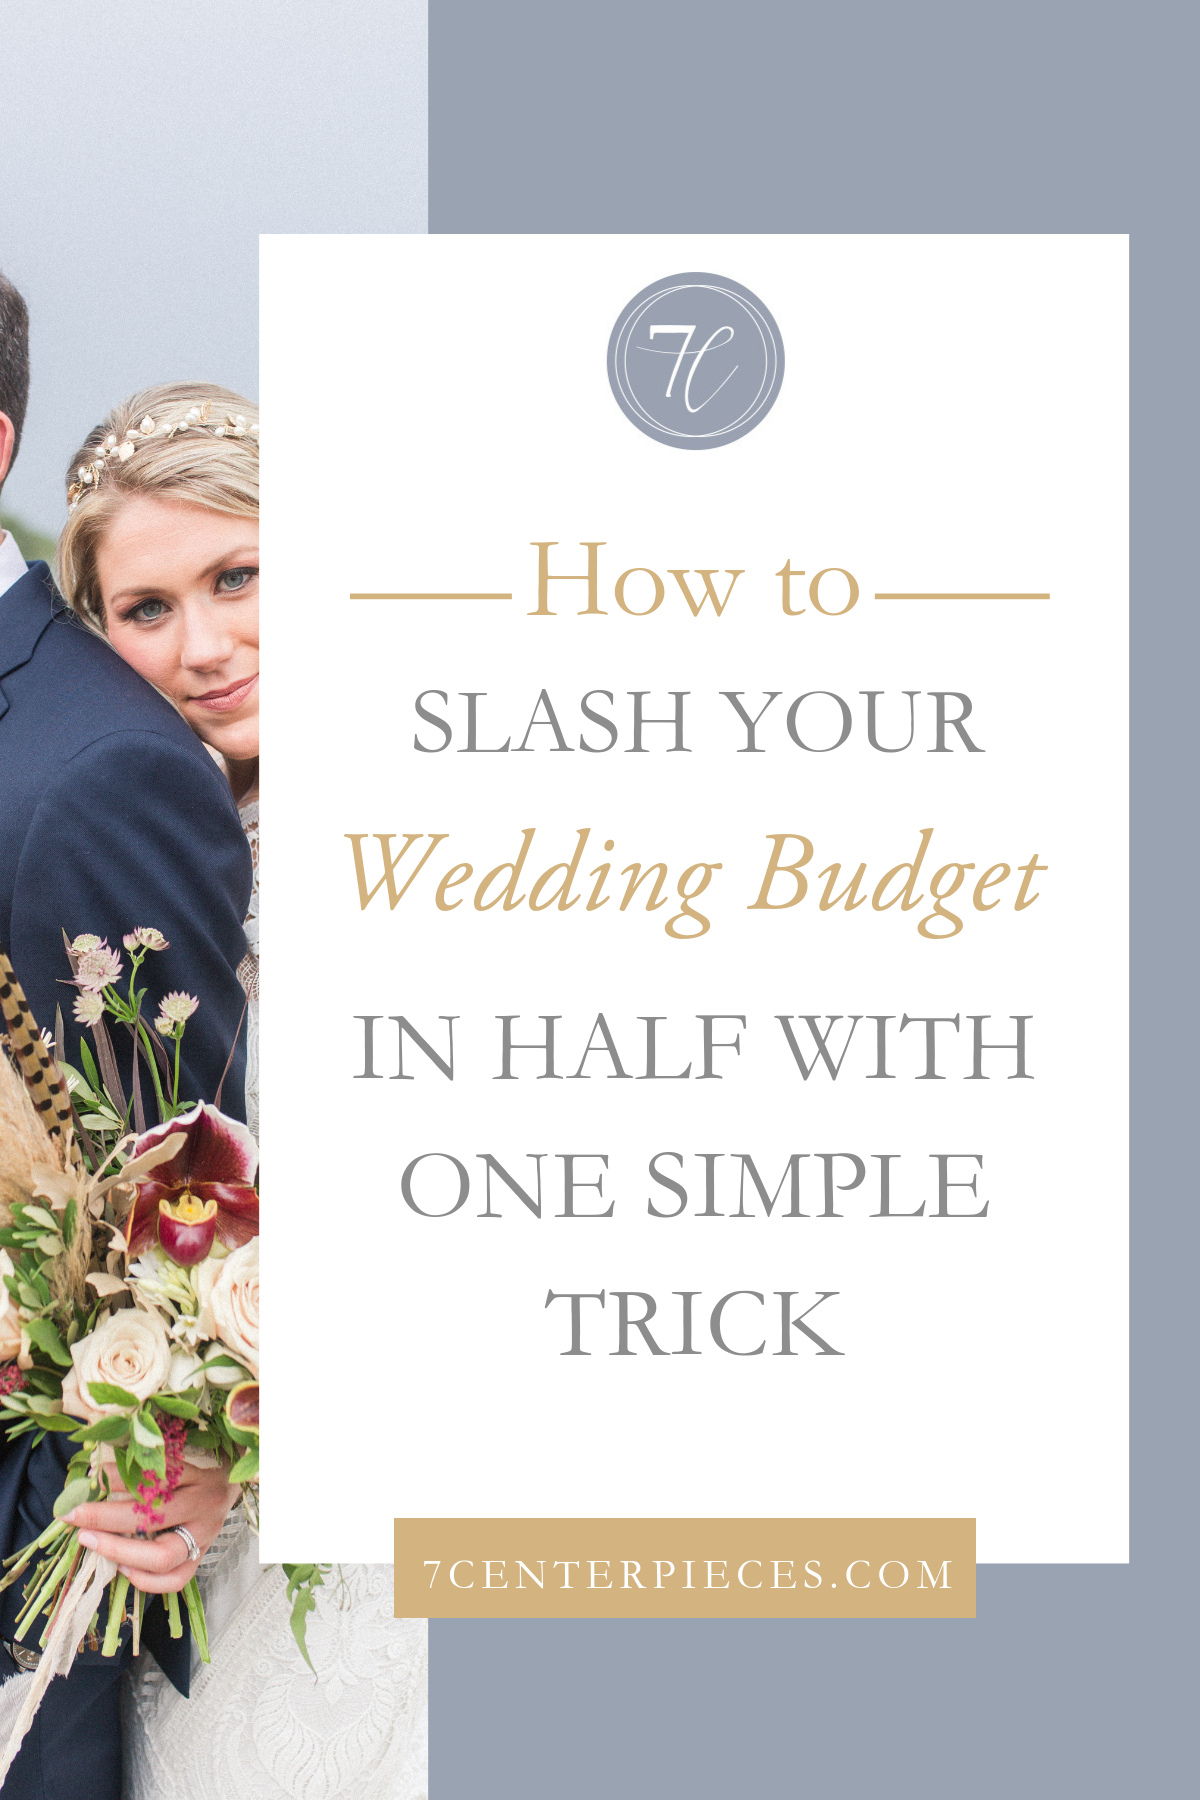 How to Slash your Wedding Budget in Half with One Simple Trick